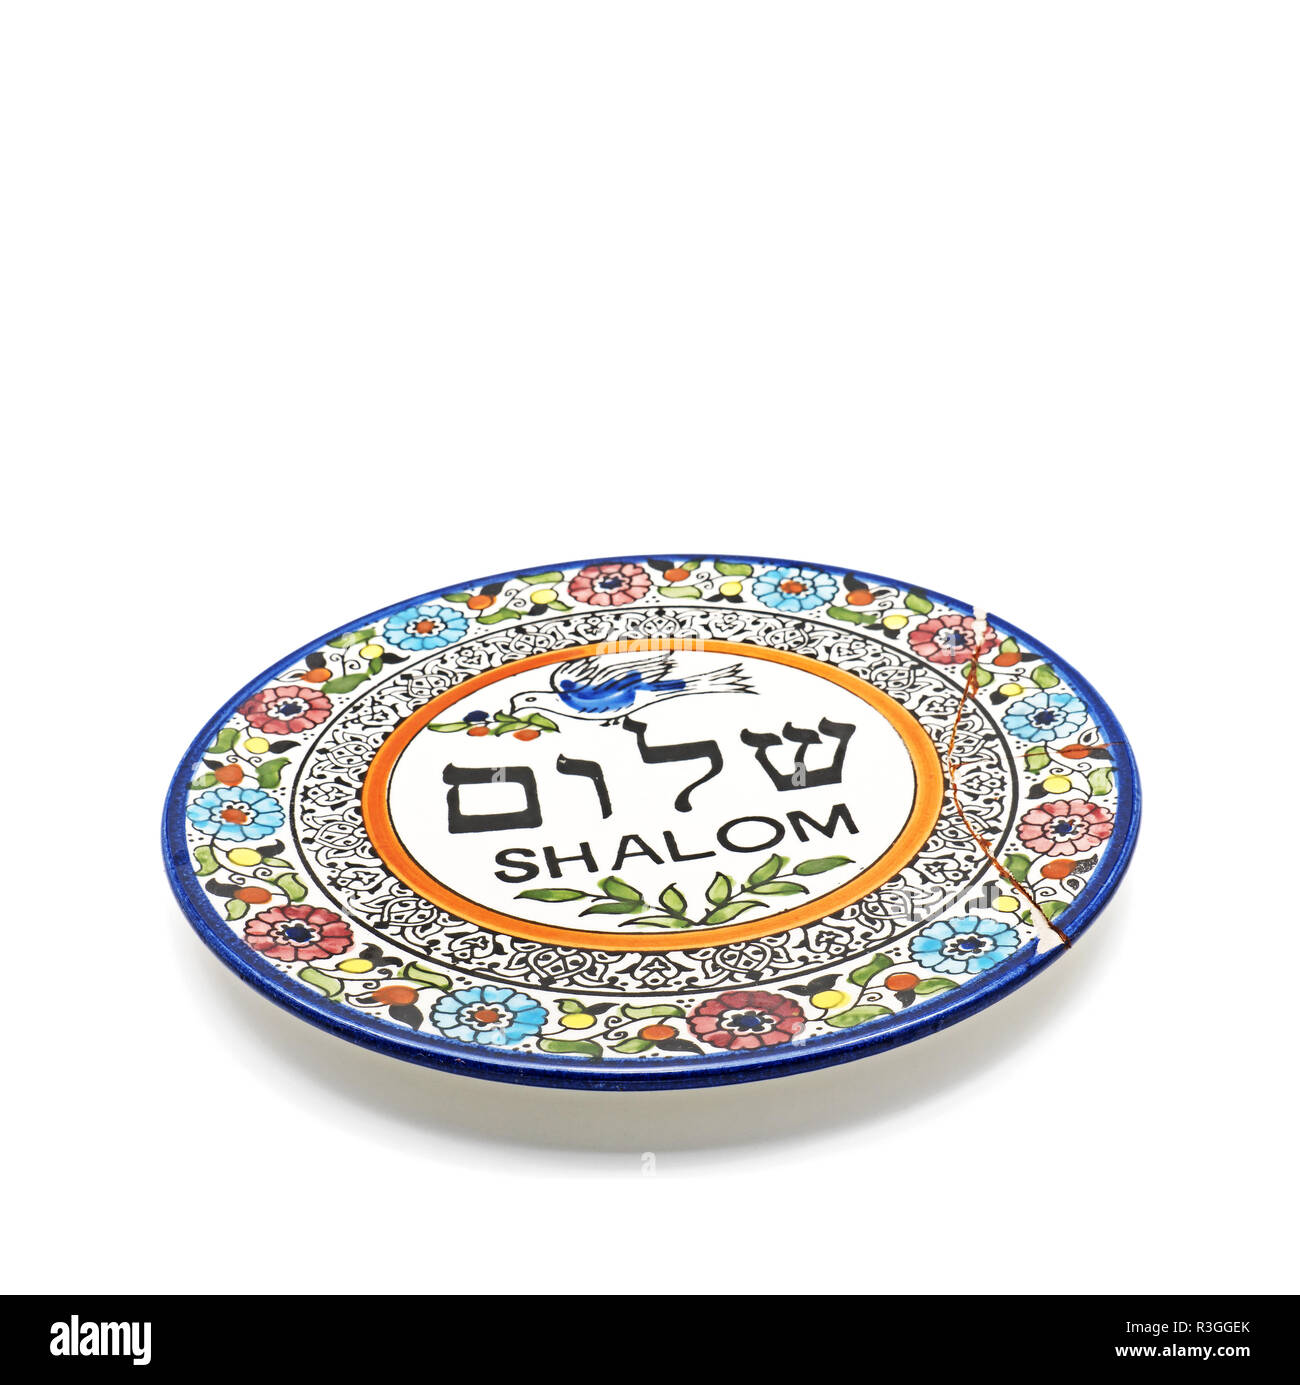 Antique Broken Ceramic Plate with Graphics and Hebrew